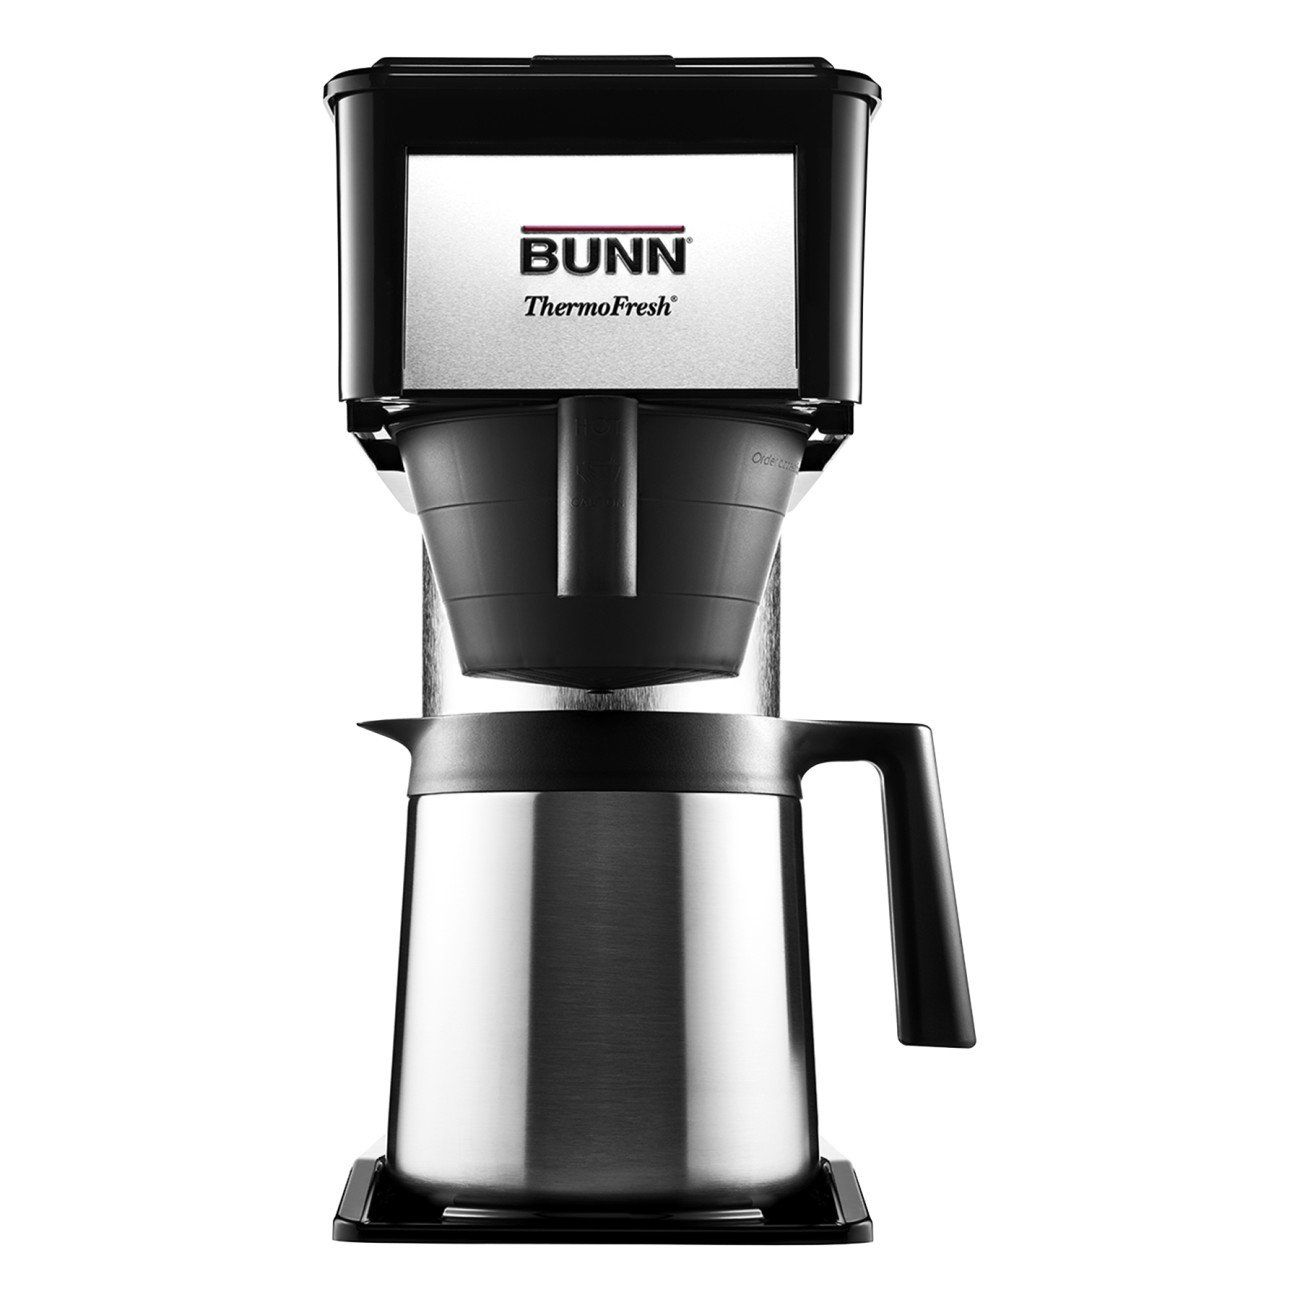 Bunn bt velocity brew cup thermal carafe home coffee brewer black